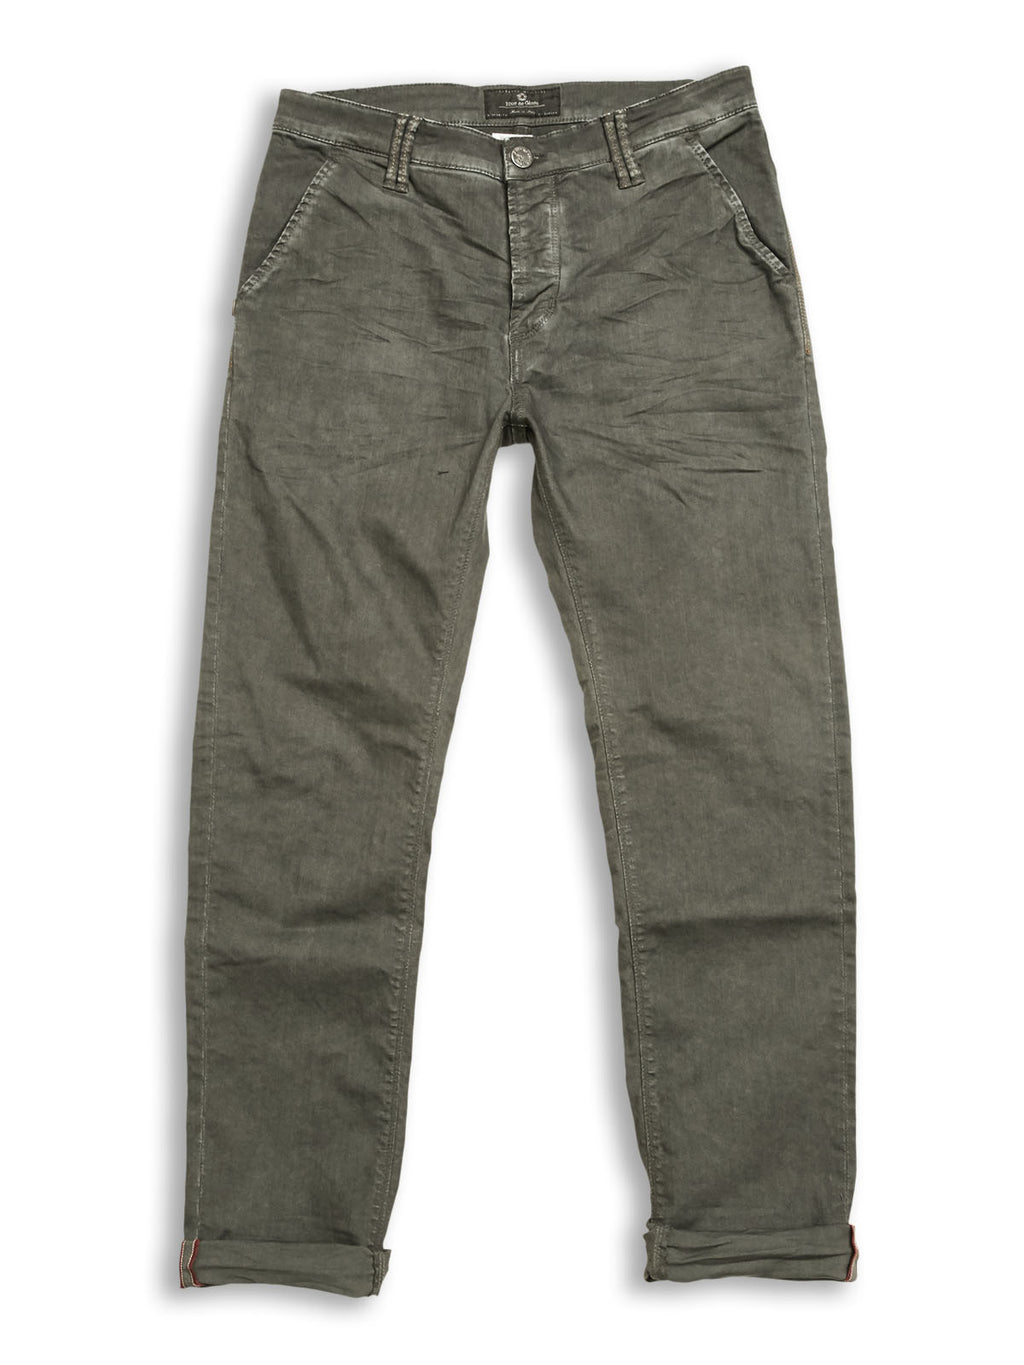 Paulo Pavia Super Oil Trousers - Olive Night